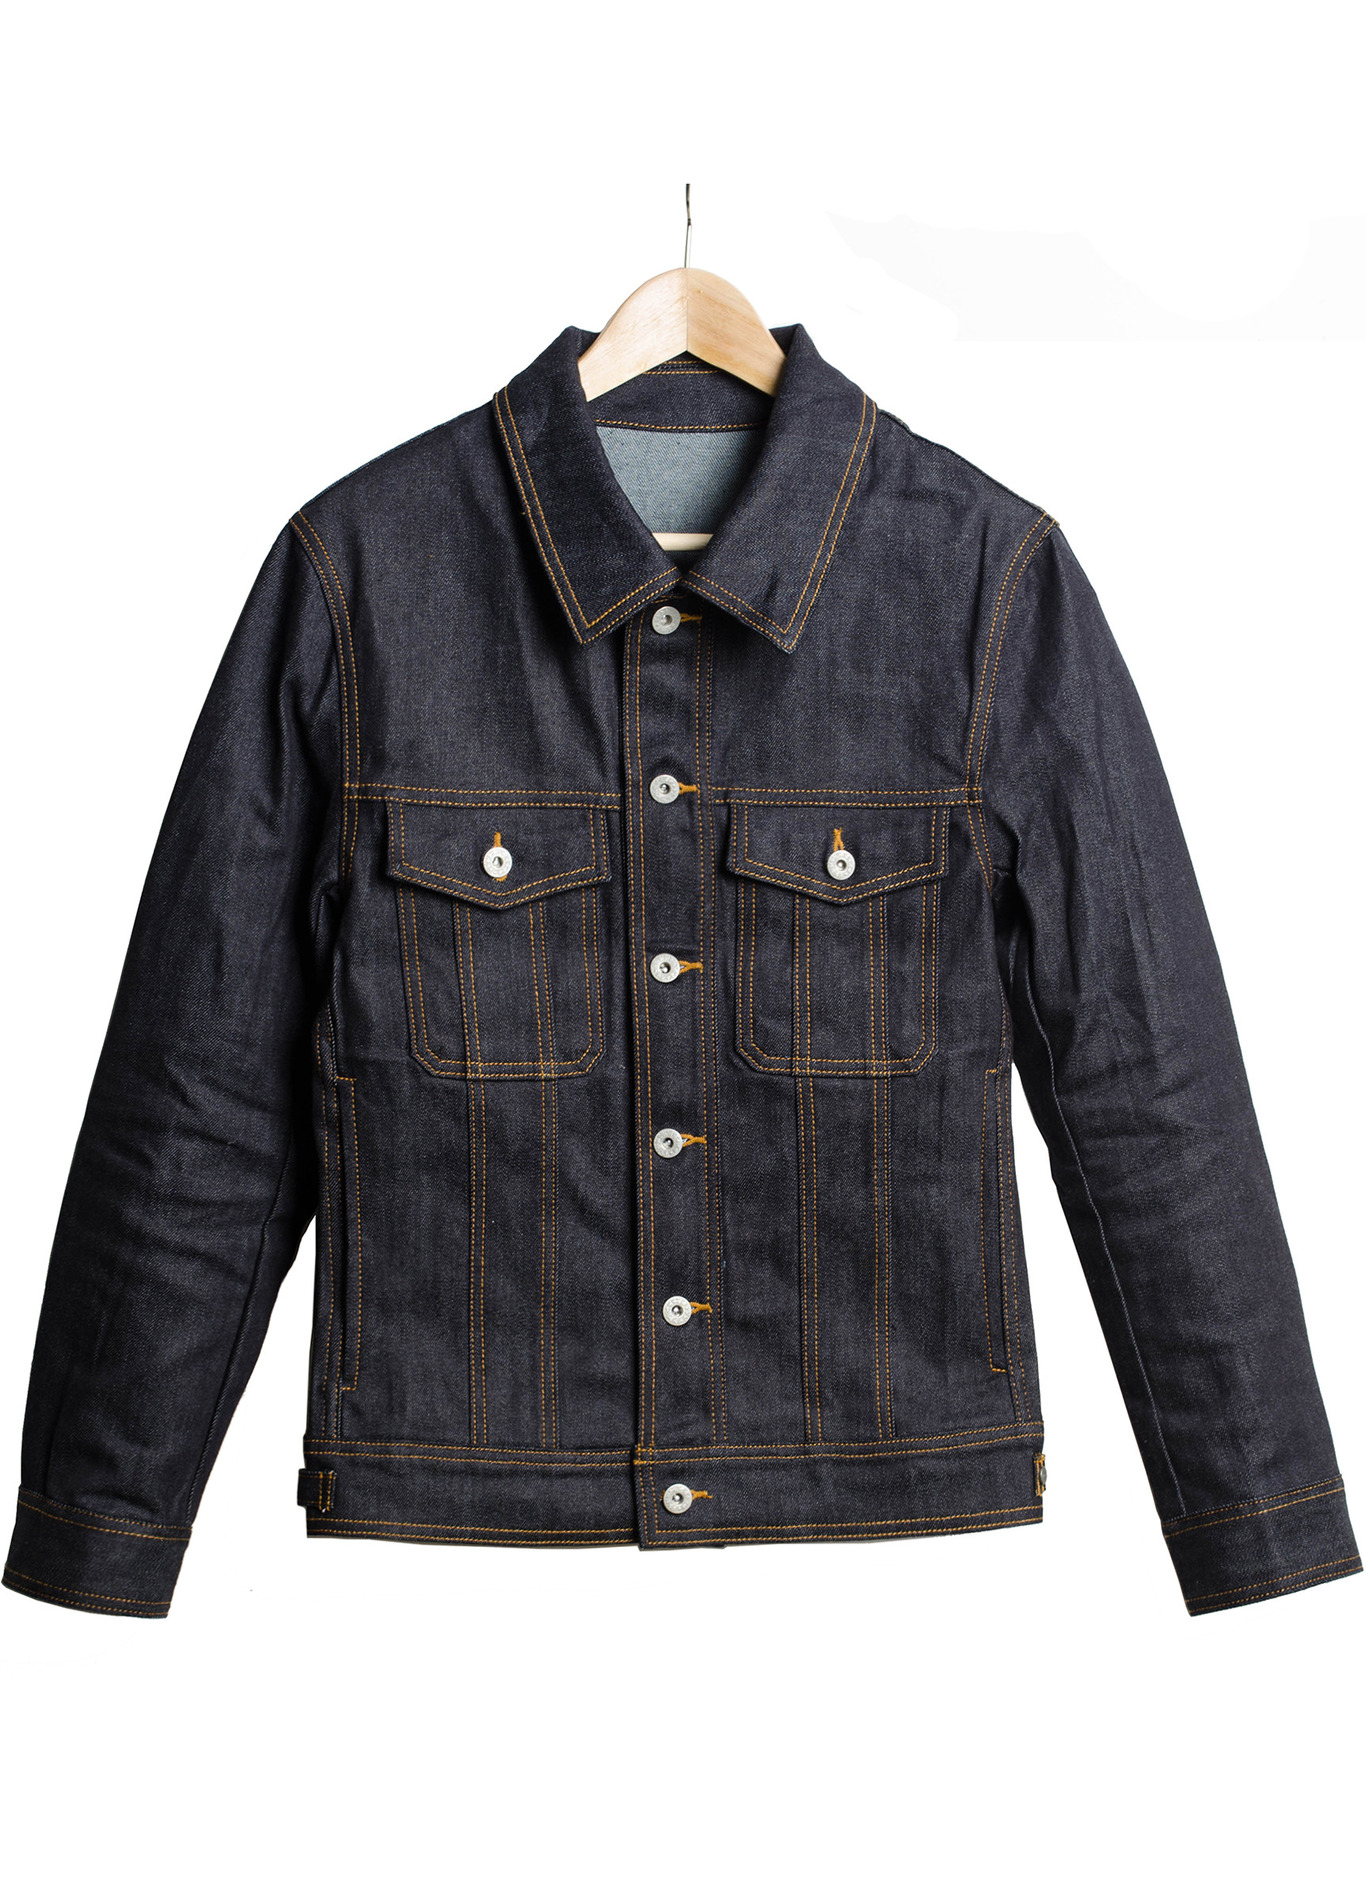 [SEASON OFF 50%] Indigo Maiden - Jacket